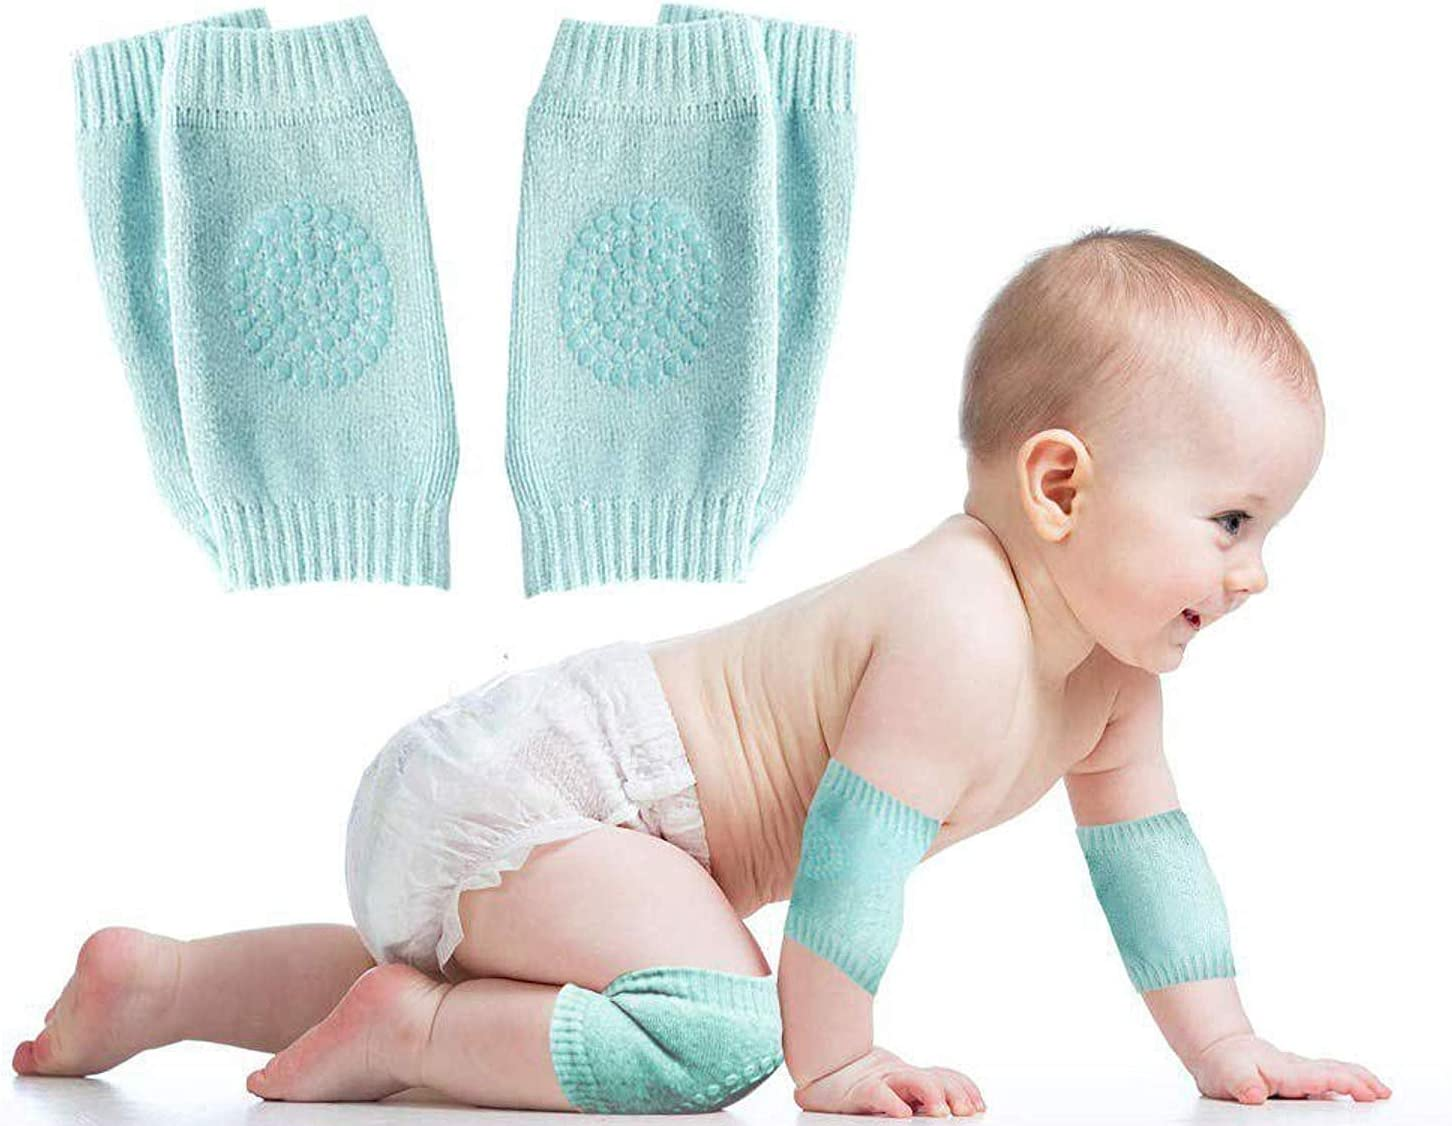 De feuilles 5 Pairs Baby Anti-Slip Knee Pads for Crawling Stretch Adjustable Protector Kneepads for Toddler Girls Boys